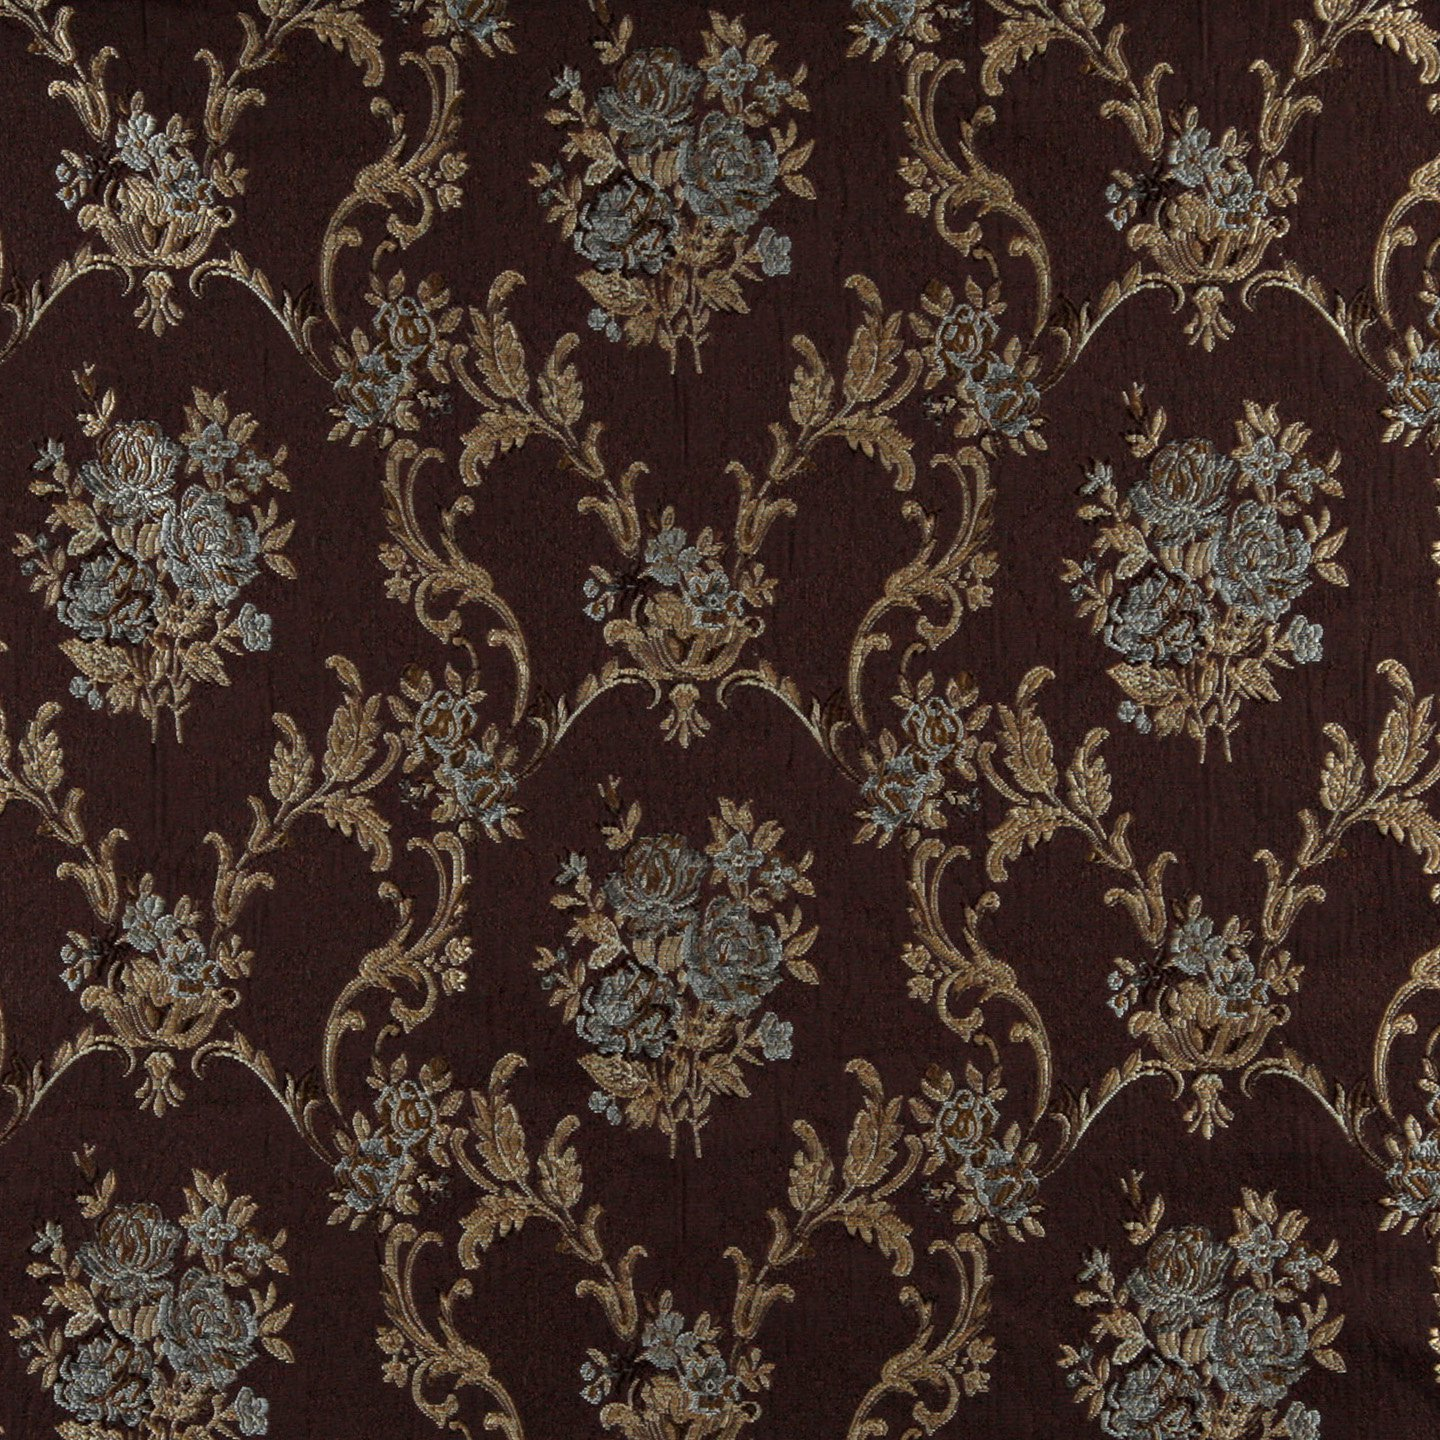 brocade sofa fabric puff k0014f brown light blue gold ivory embroidered floral